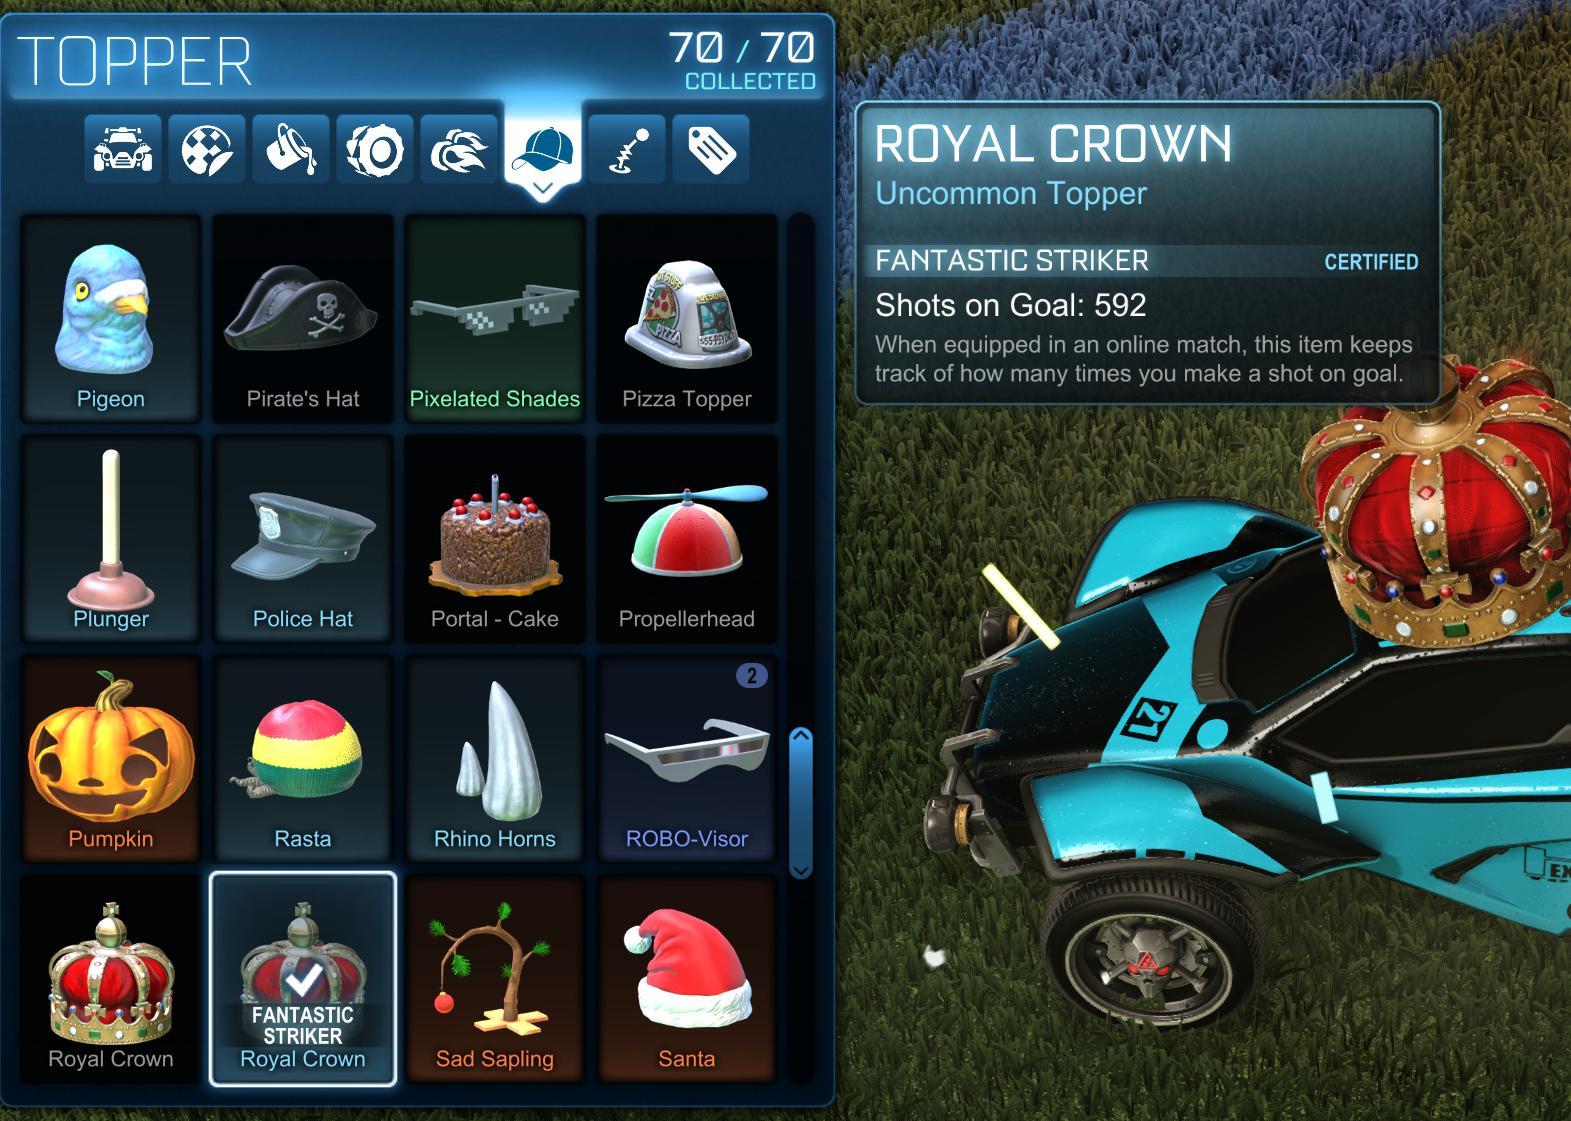 Rocket League Certified Items Guide How To Get Certified Items And Increase Their Levels